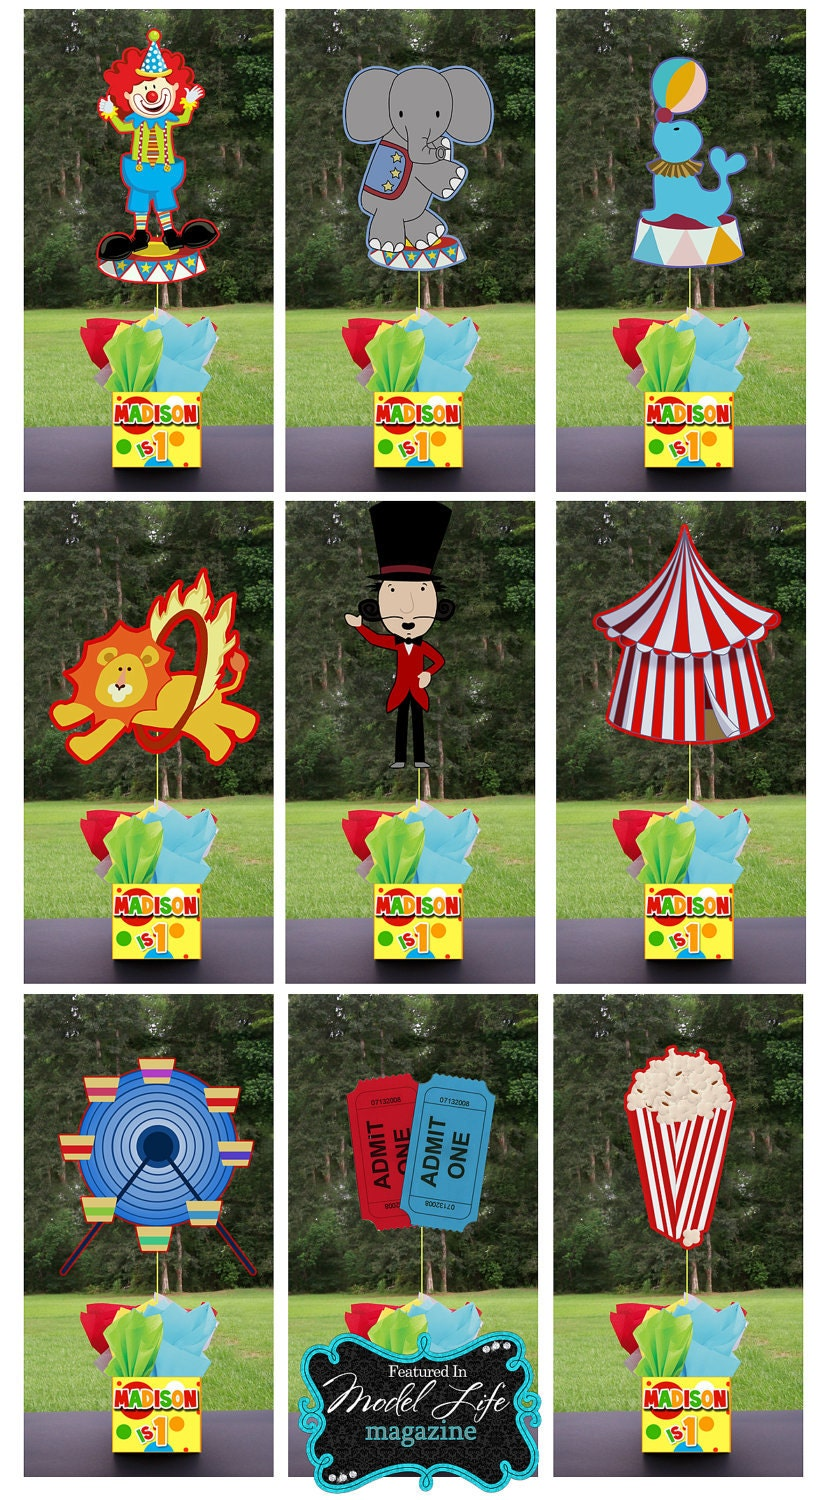 Magnificent Circus Carnival Theme Party Centerpieces 820 x 1500 · 453 kB · jpeg